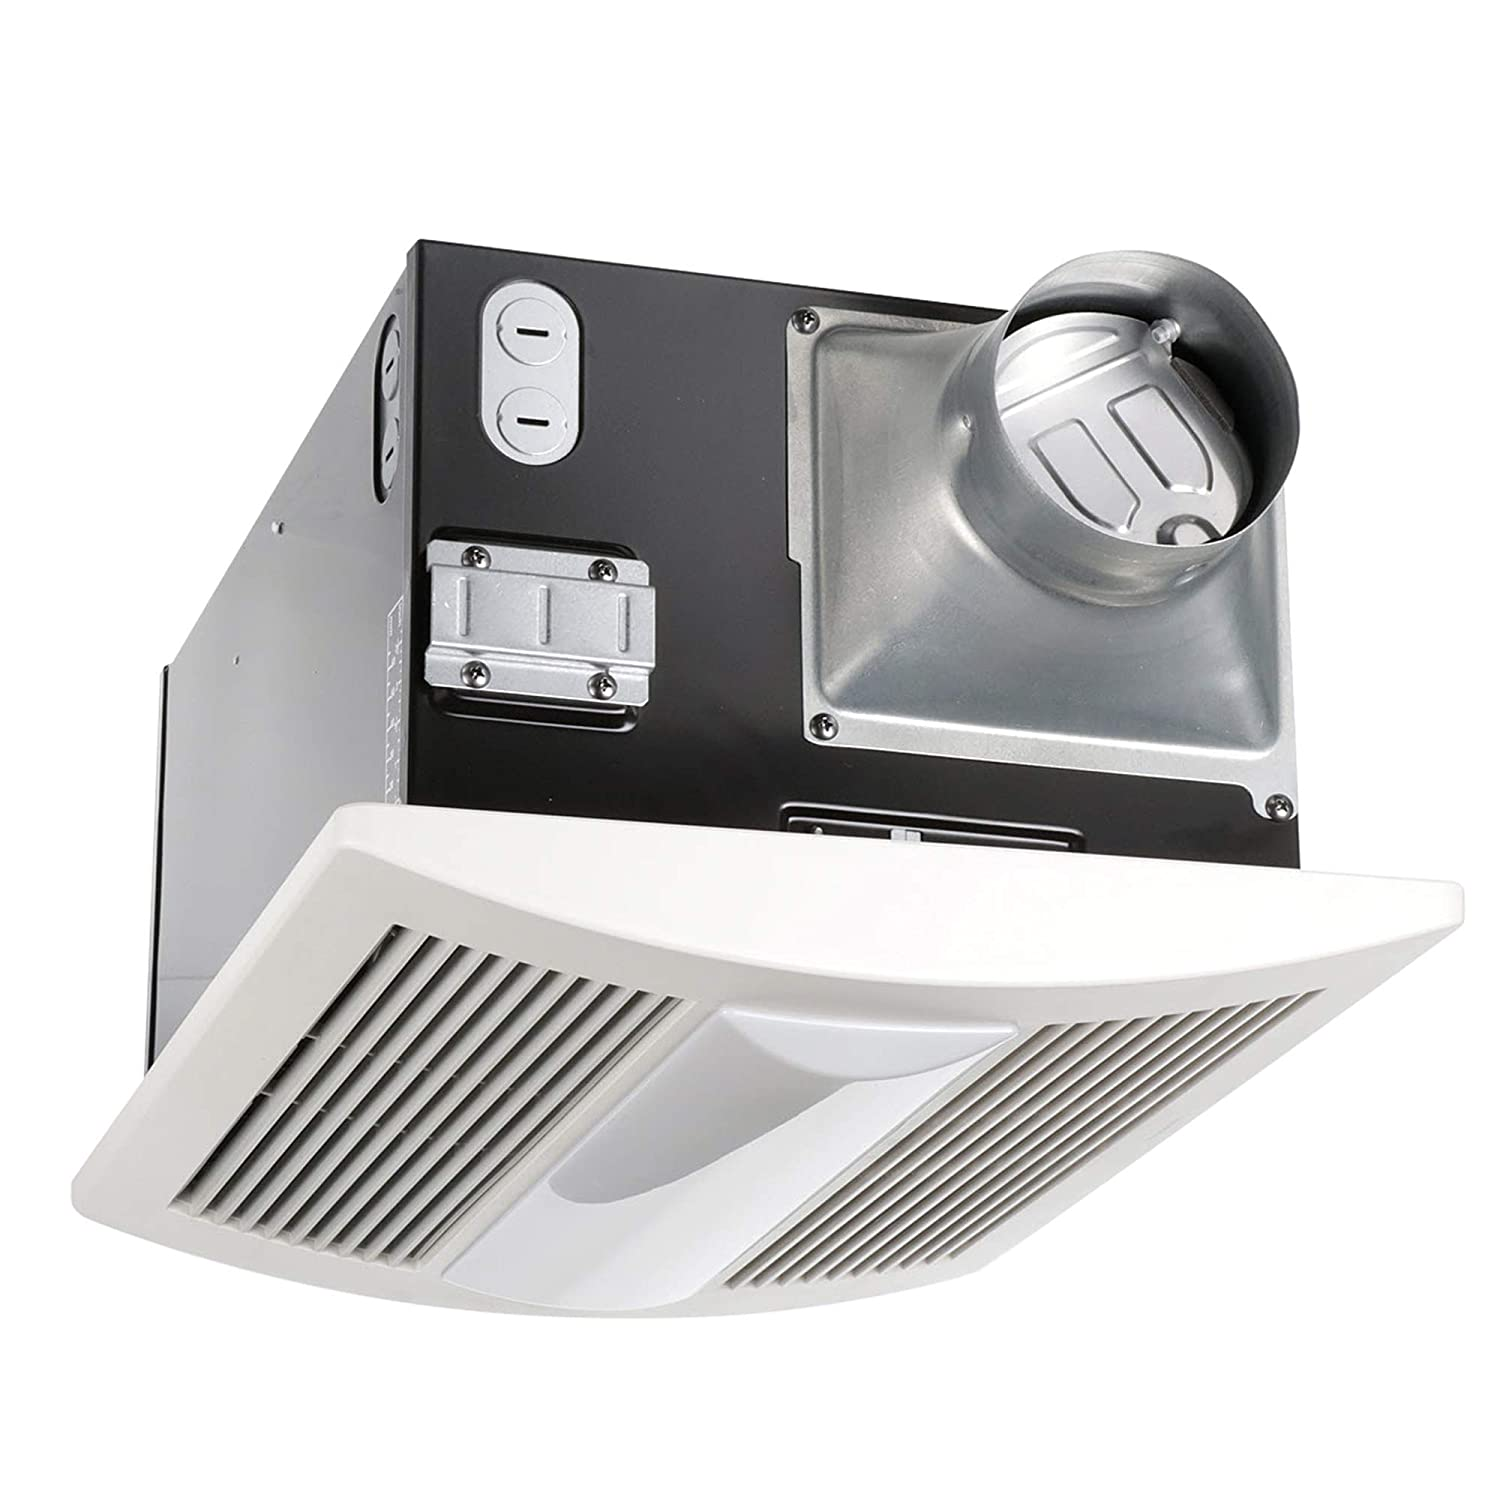 Panasonic Whisper Warm Exhaust Fan